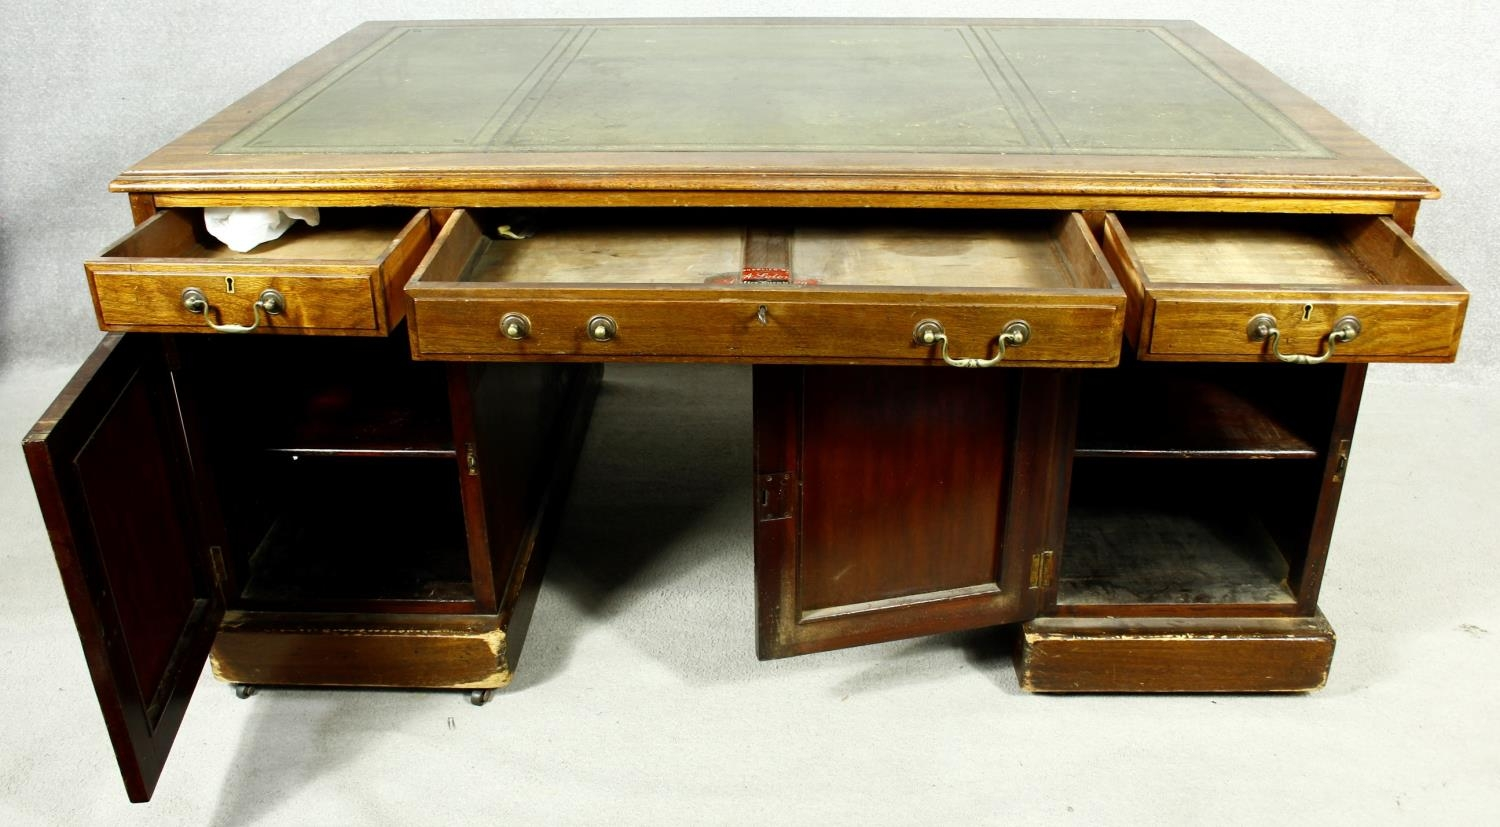 A C.1900 mahogany three section partner's pedestal desk with inset tooled leather top above an - Image 4 of 20